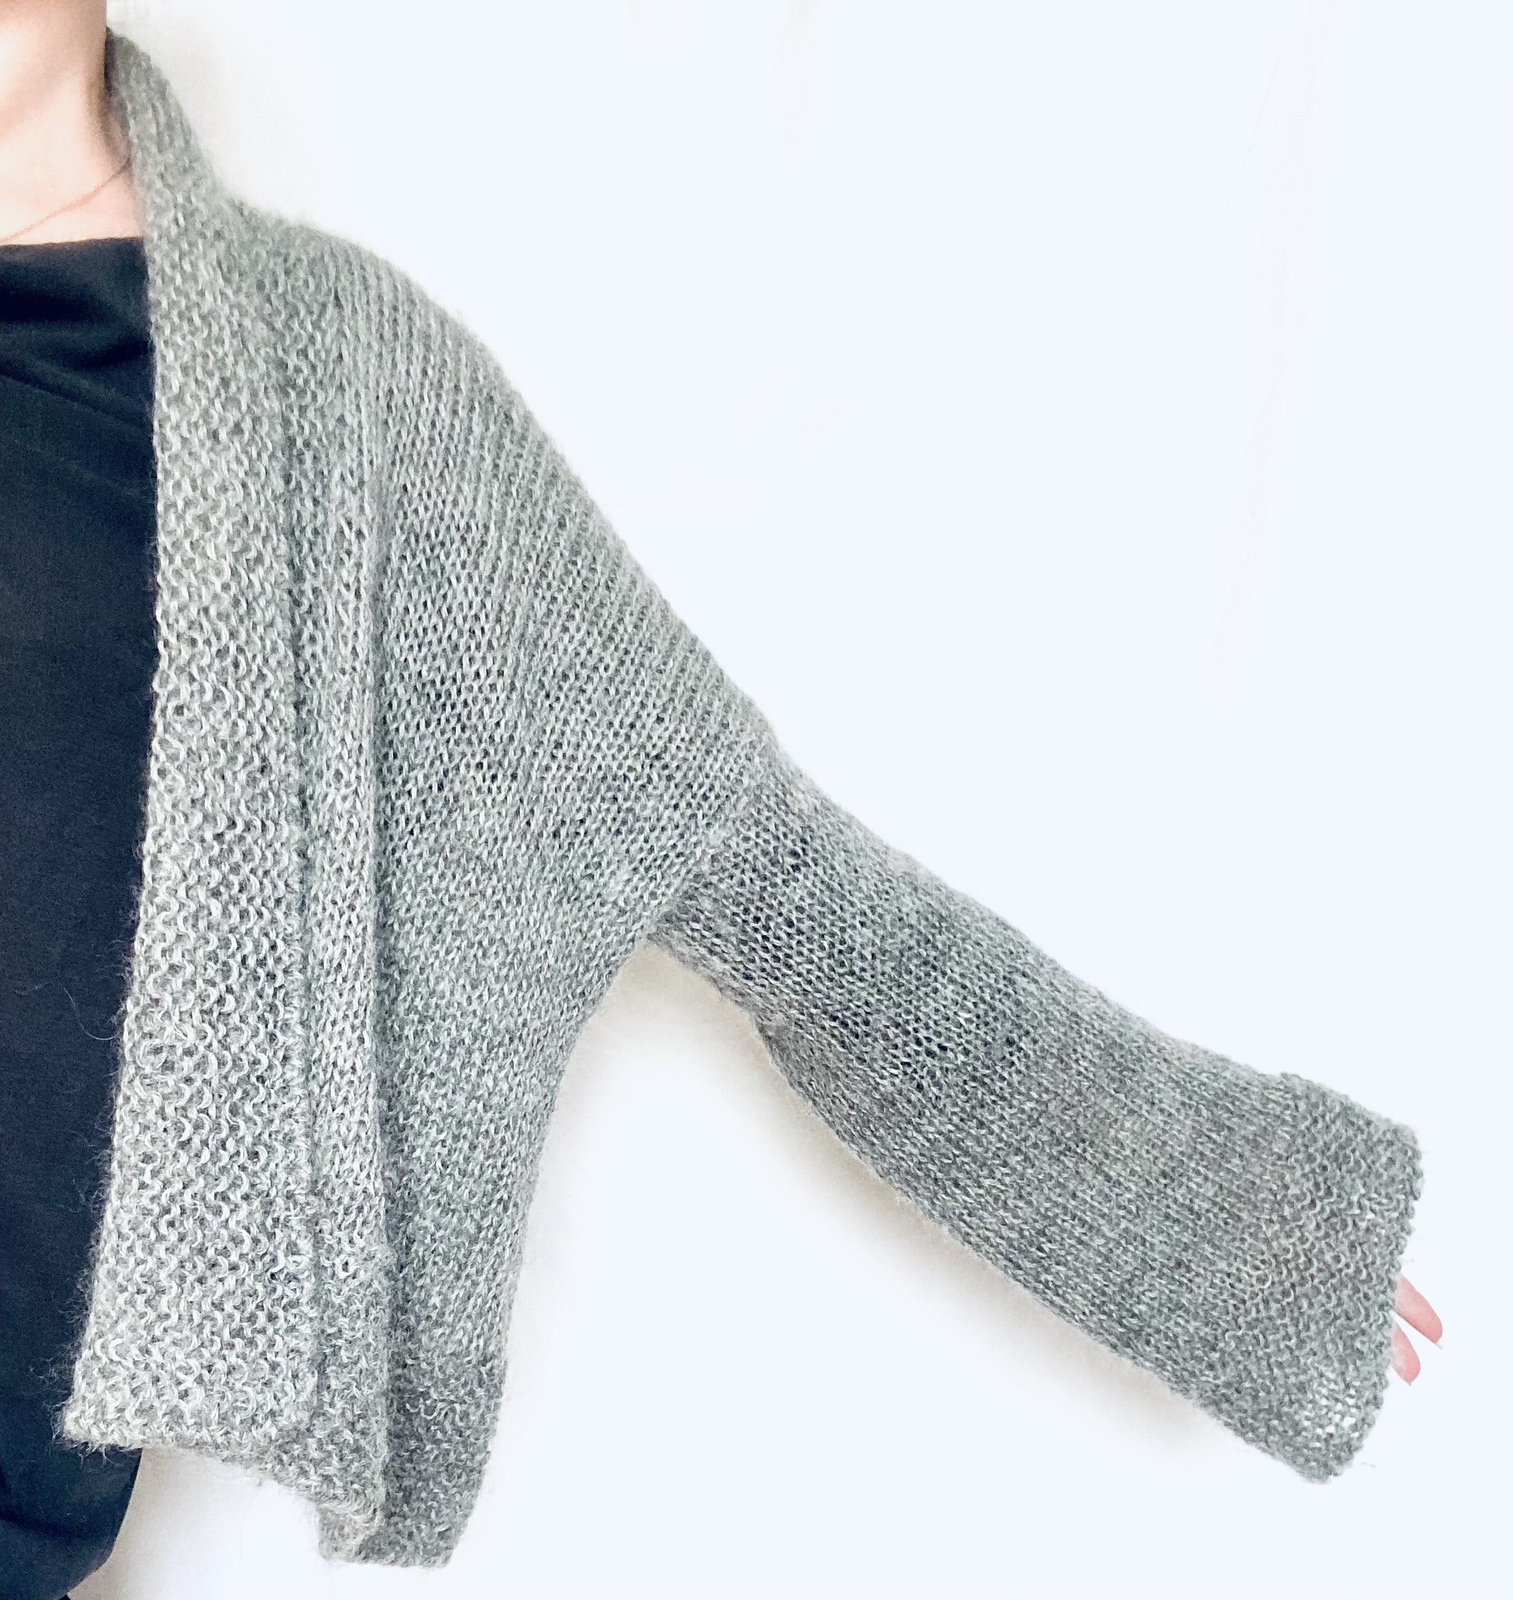 Luv Cardigan by Meret Buetzberger